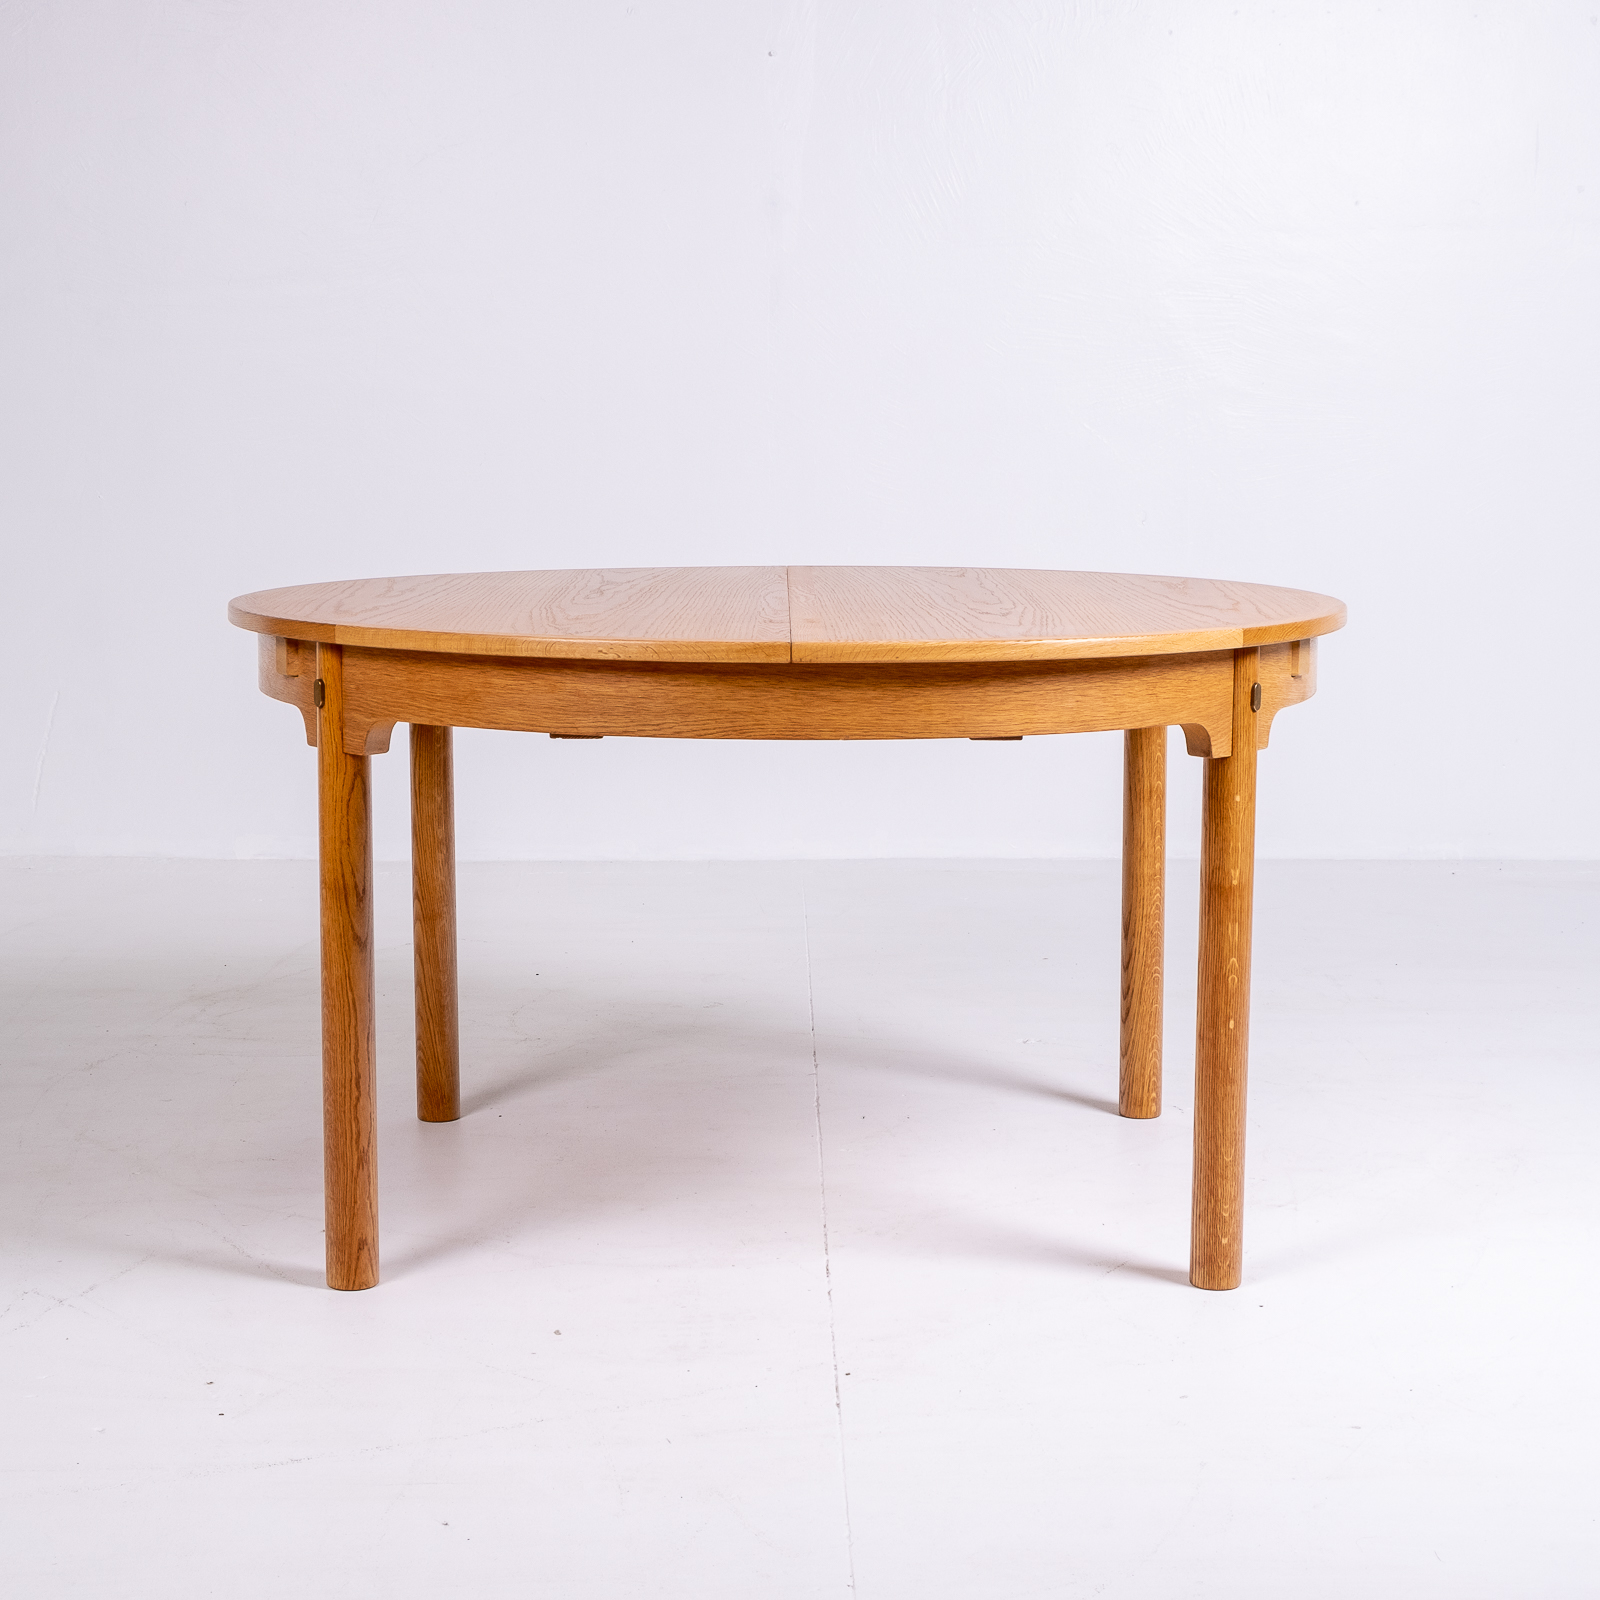 Hero Round 140 Dining Table By Borge Mogensen For Karl Andersson & Söner In Oak With Butterfly Extensions, 1960s, Denmark67